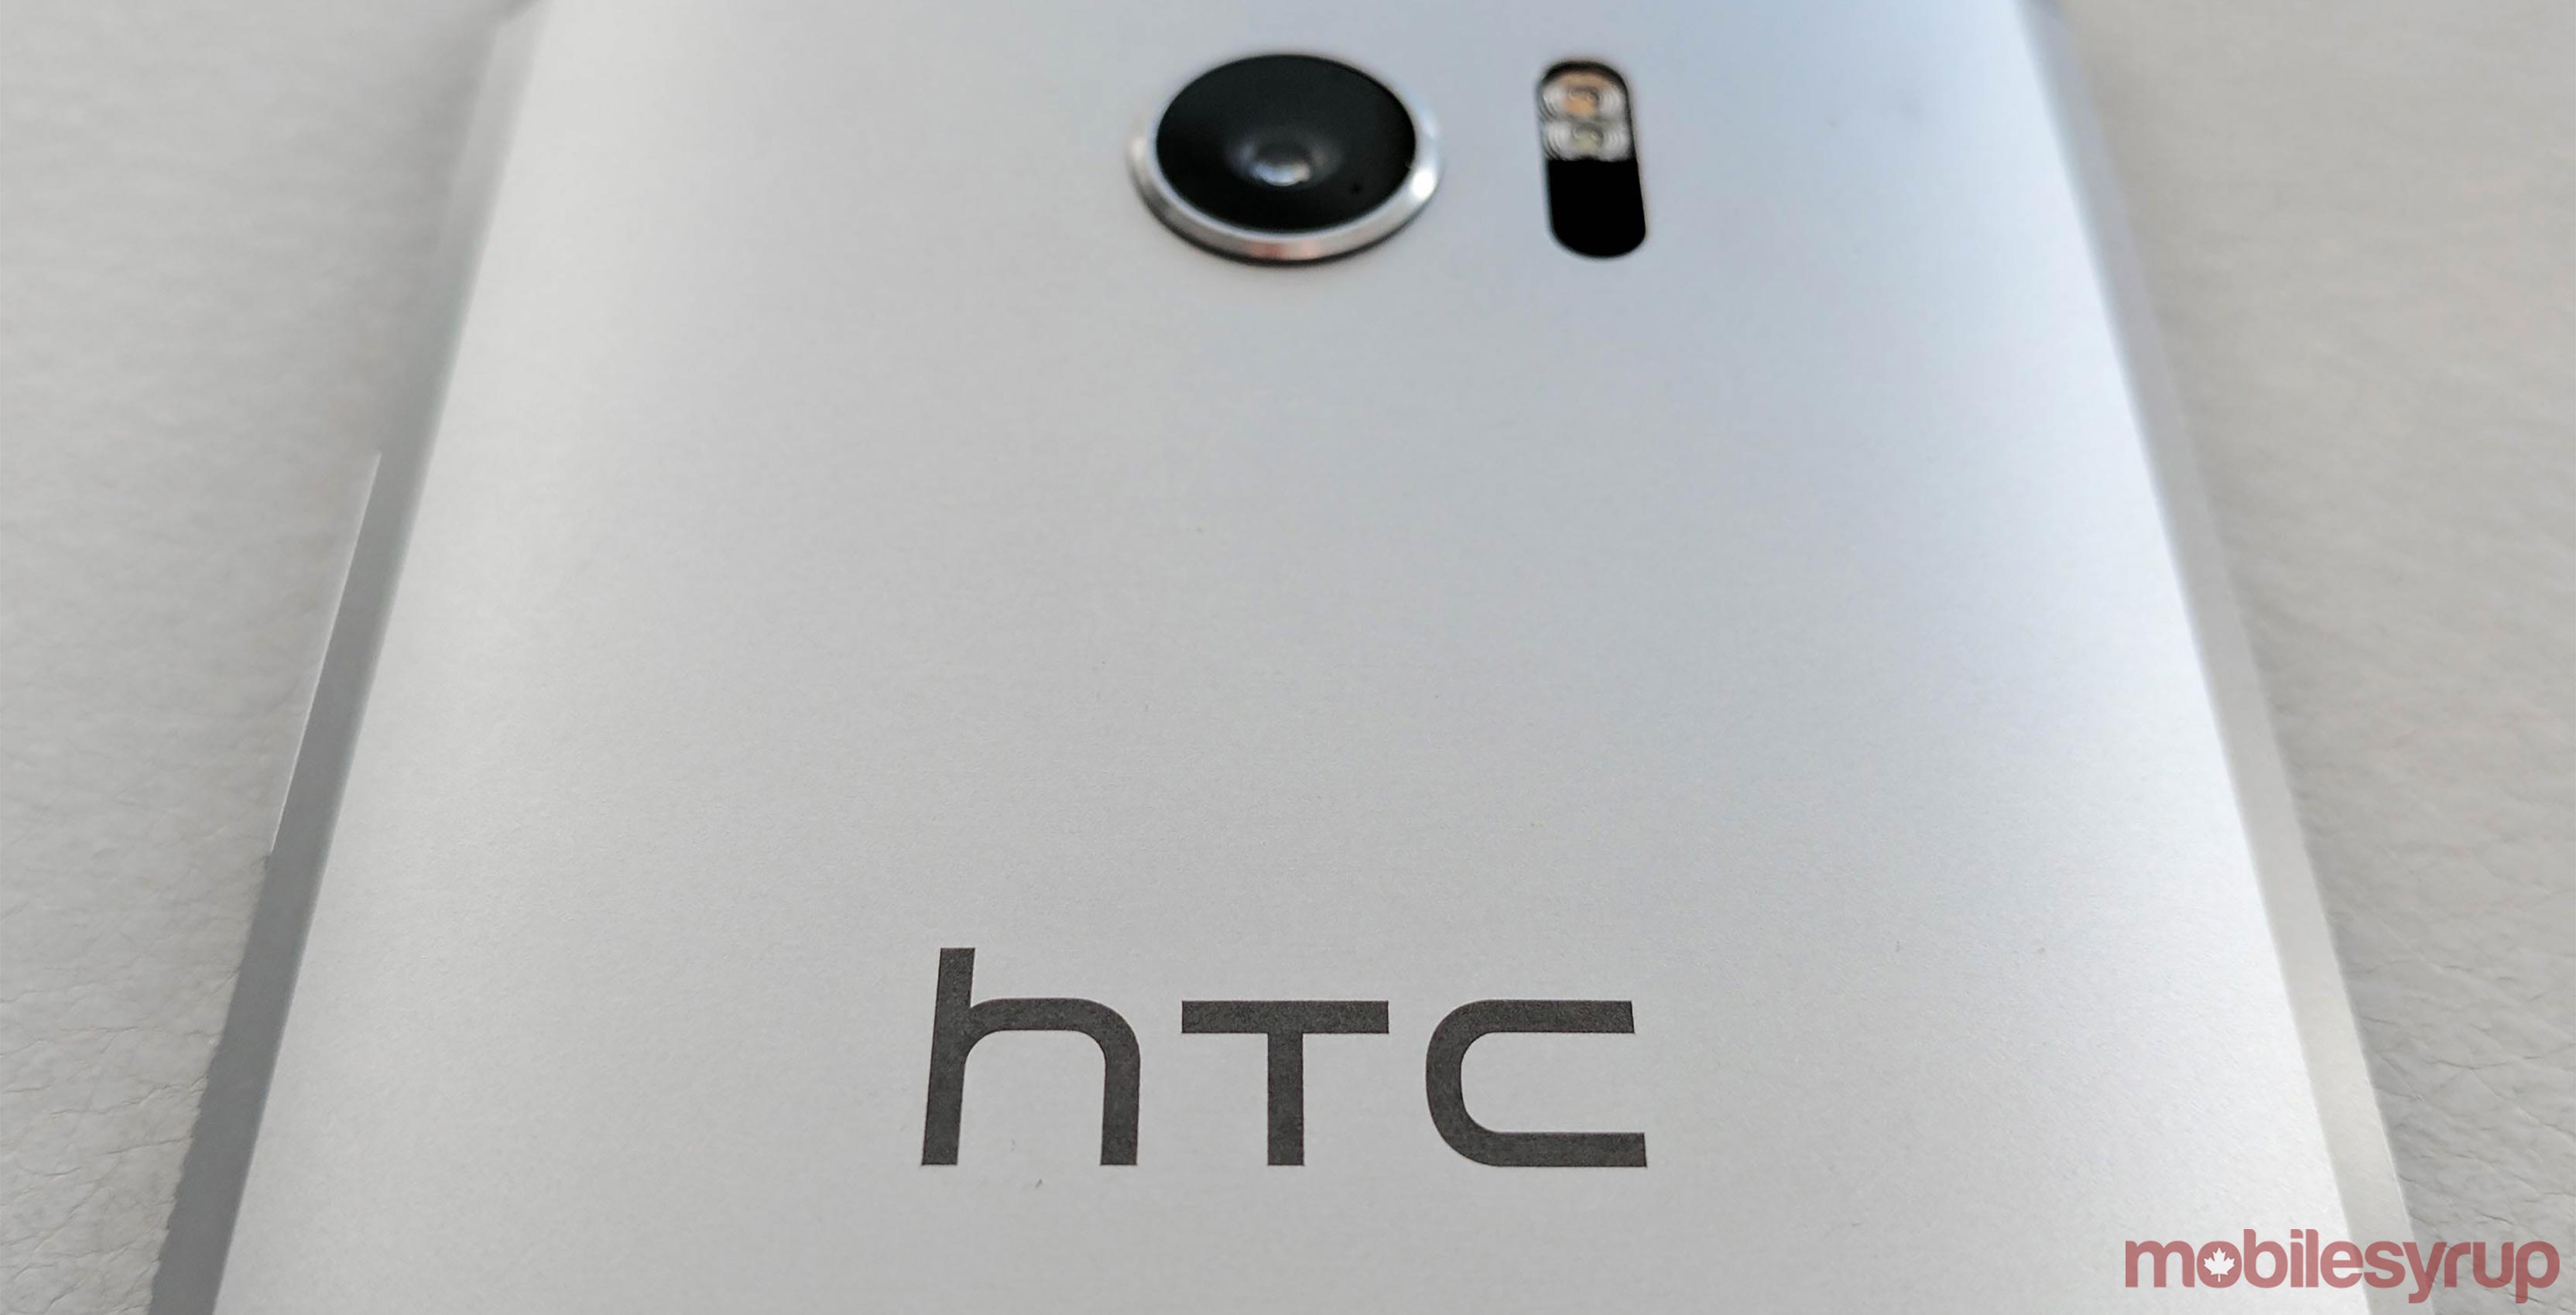 HTC says it's not making an Android Wear smartwatch